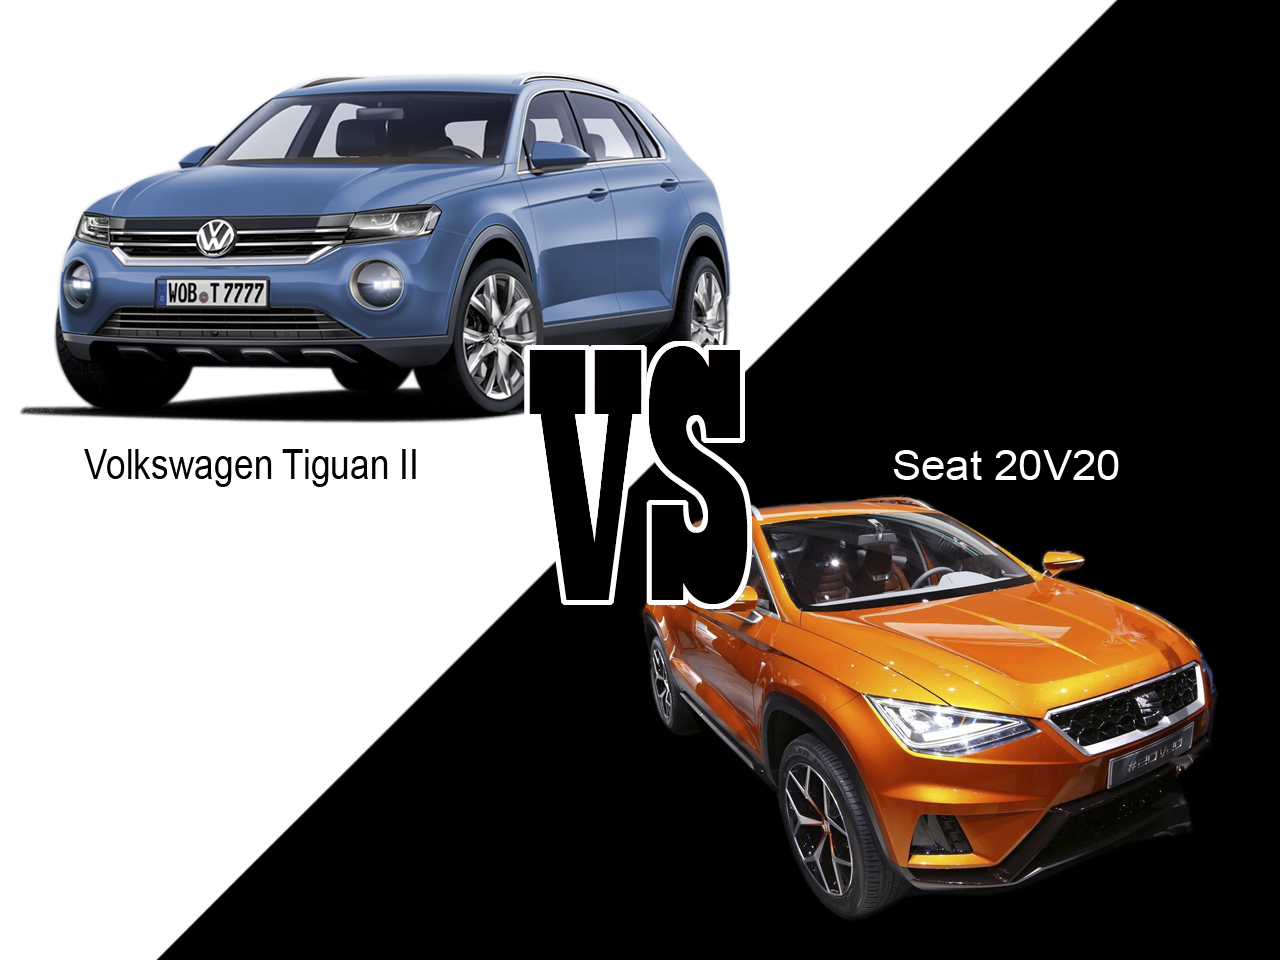 volkswagen tiguan 2 2016 vs seat suv 2016 les jumeaux l 39 argus. Black Bedroom Furniture Sets. Home Design Ideas